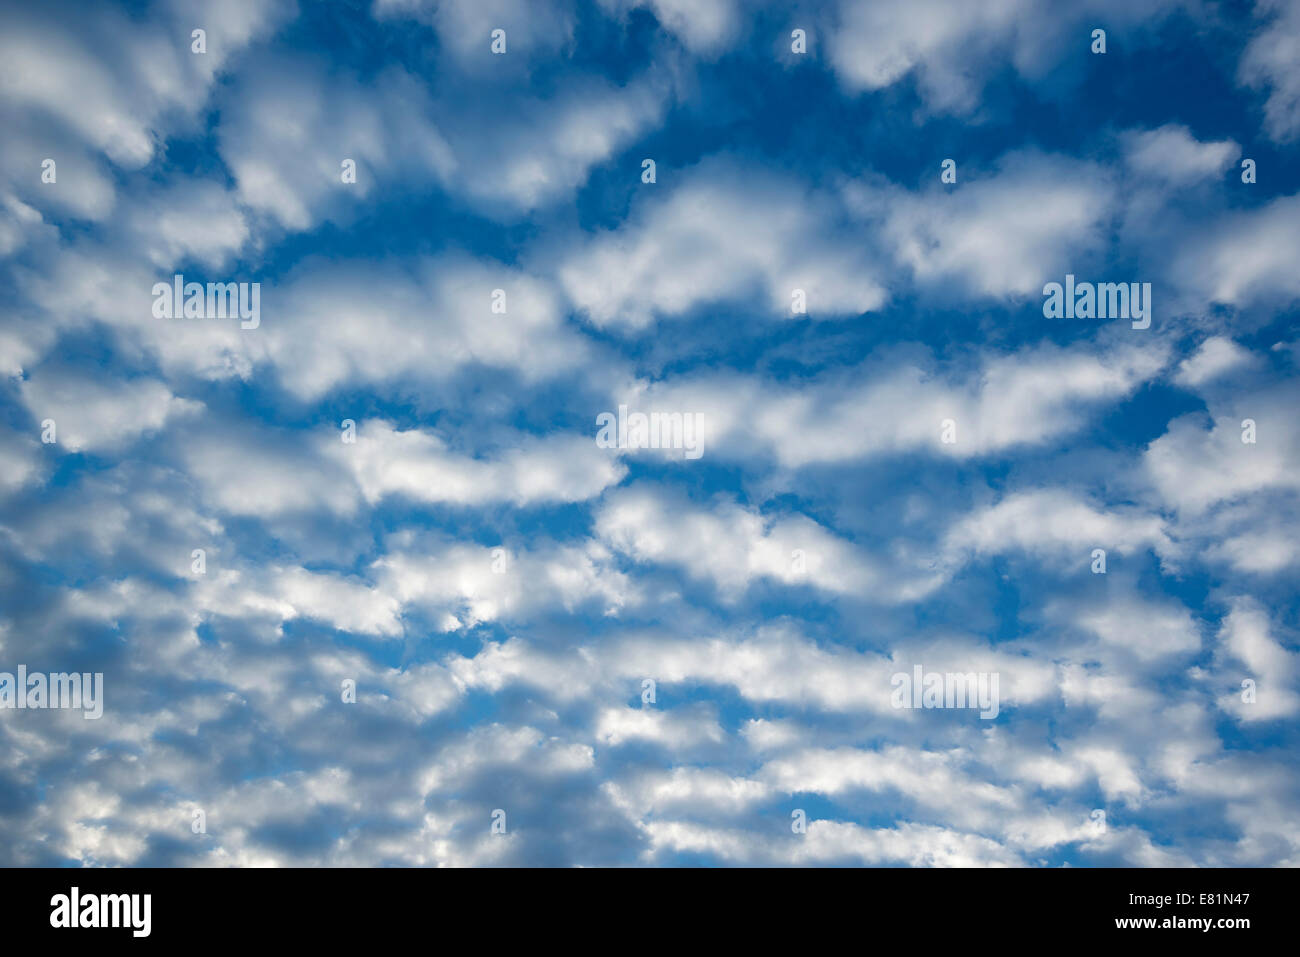 Cirrocumulus clouds, small fluffy clouds, Germany - Stock Image